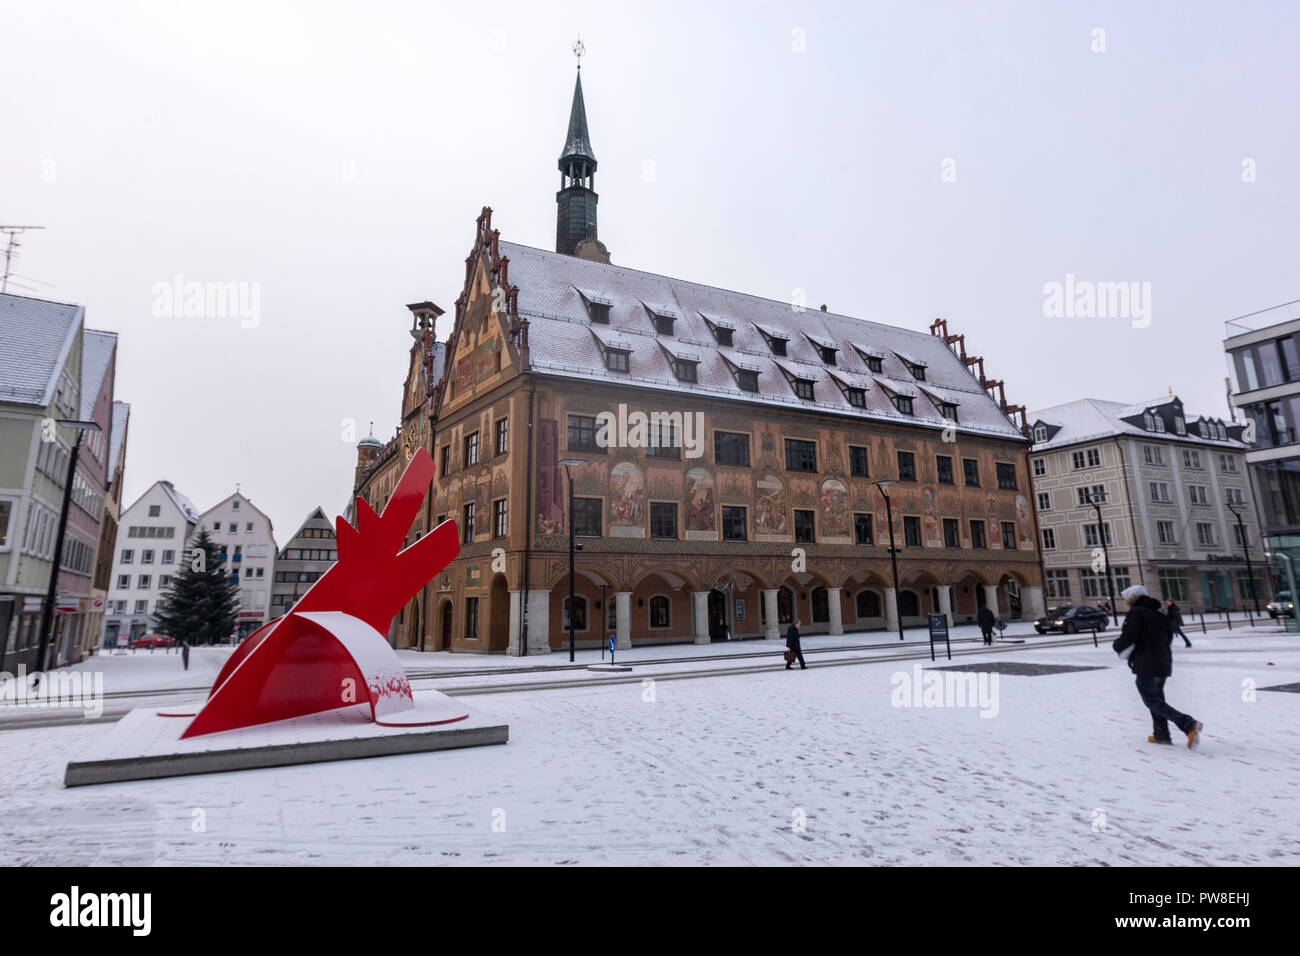 Rathaus and Red Dog for Landois, Roter Hund by Keith Haring, sculpture in Hans-und-Sophie-Scholl-Platz,  Ulm, Baden-Württemberg, Germany - Stock Image